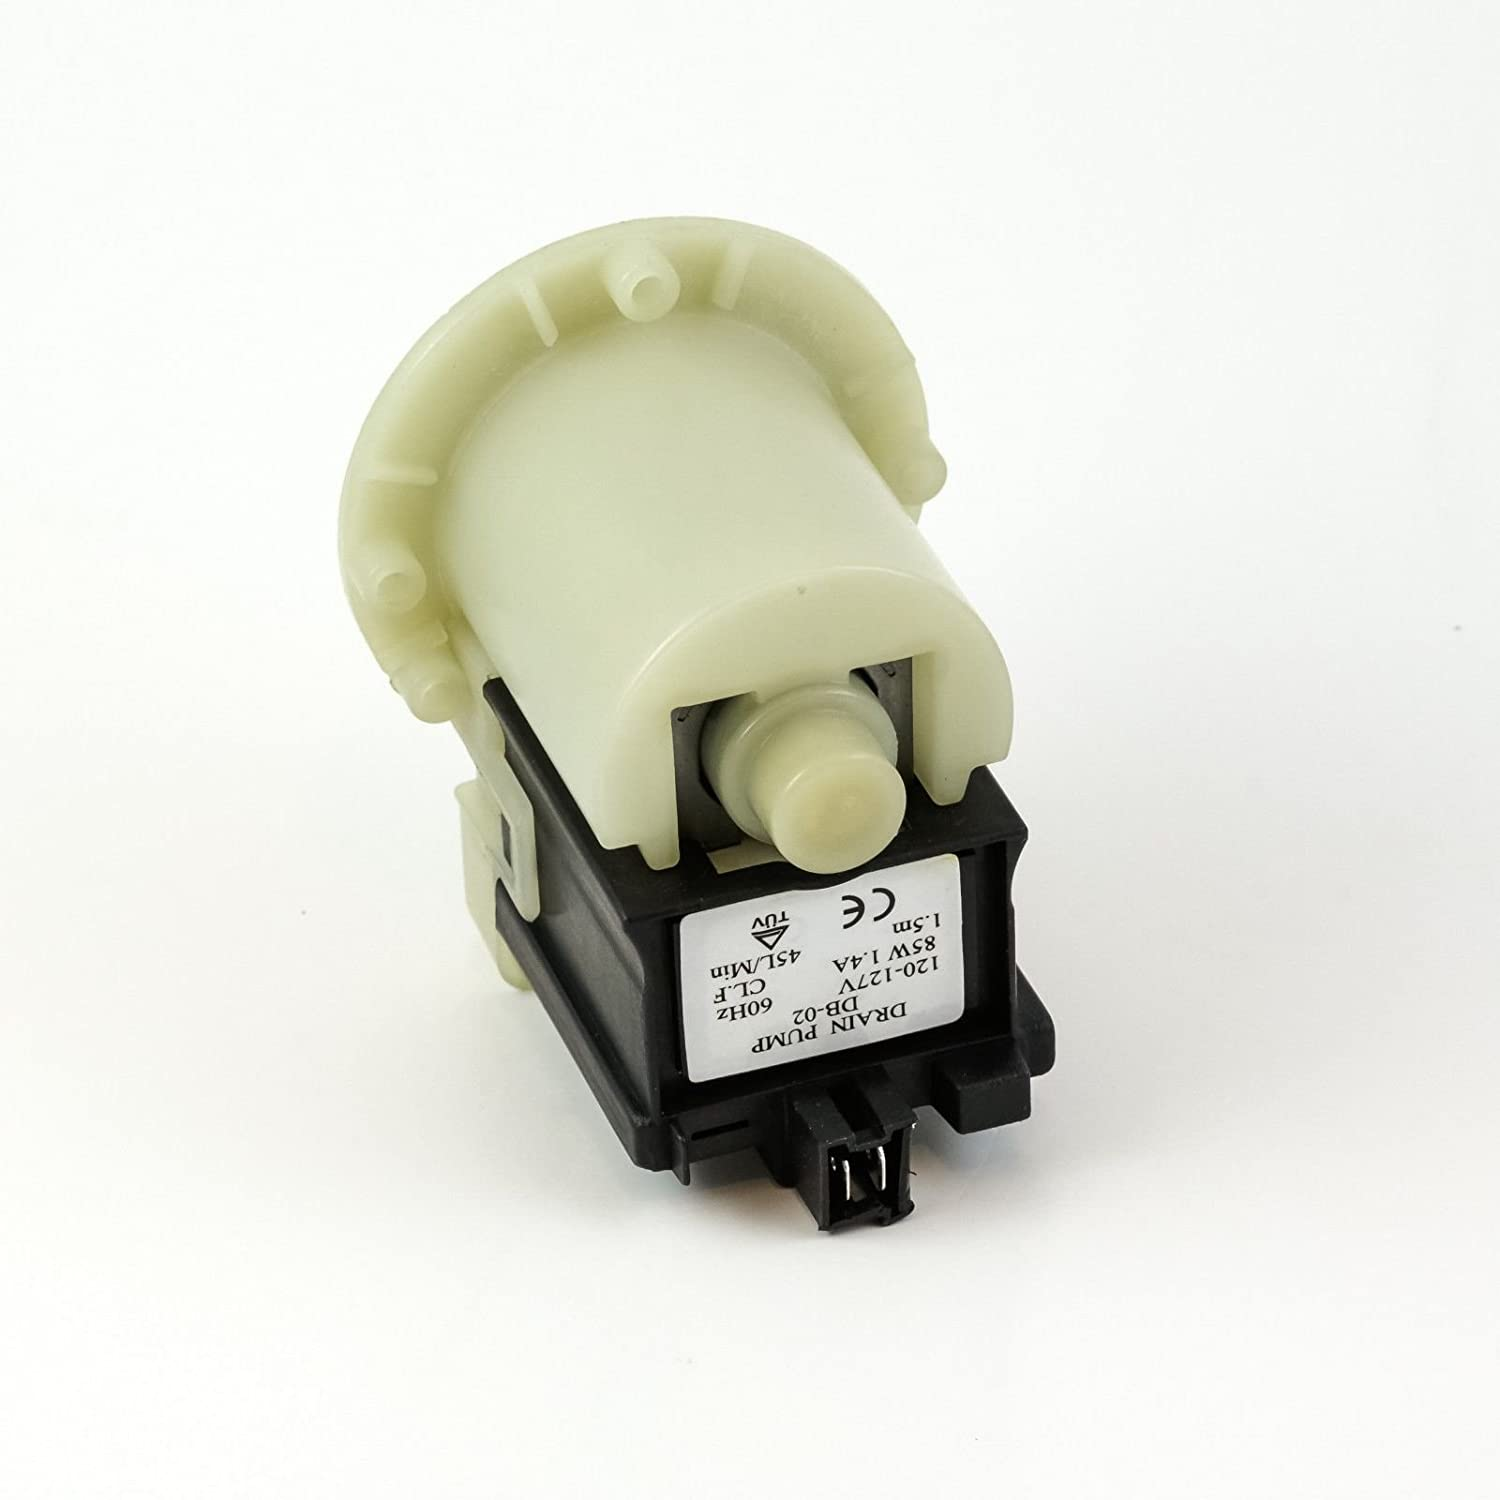 Whirlpool Wtw5400 Drain Pump 5 White Home Improvement Elec Diagram Parts List For Model Mde6800ayw Maytagparts Dryer